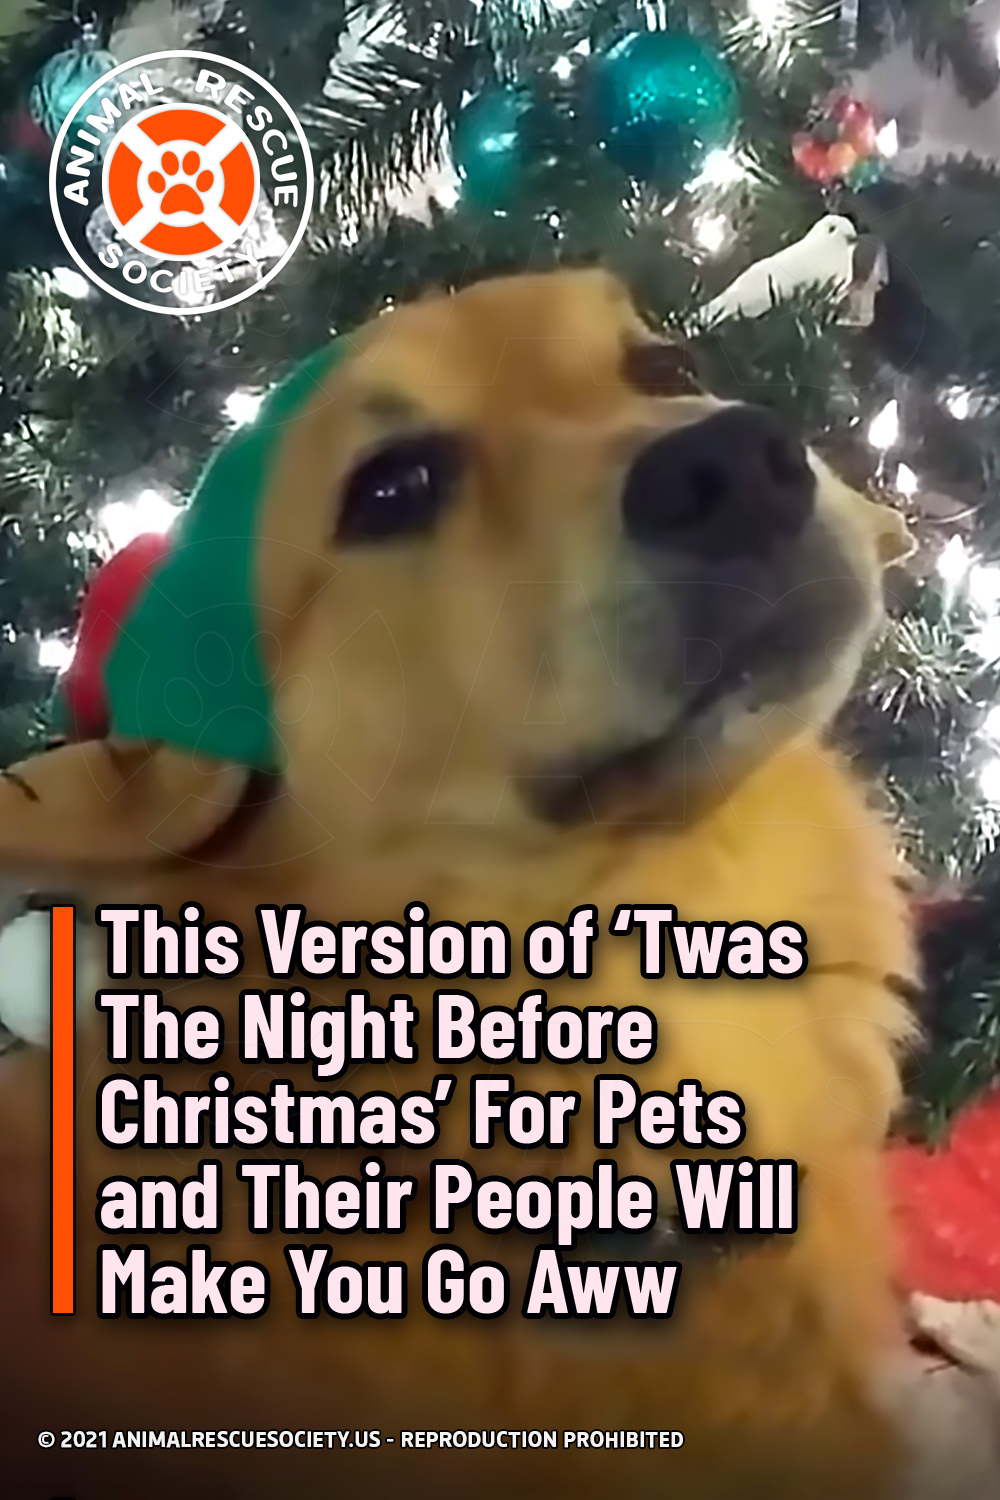 This Version of 'Twas The Night Before Christmas' For Pets and Their People Will Make You Go Aww